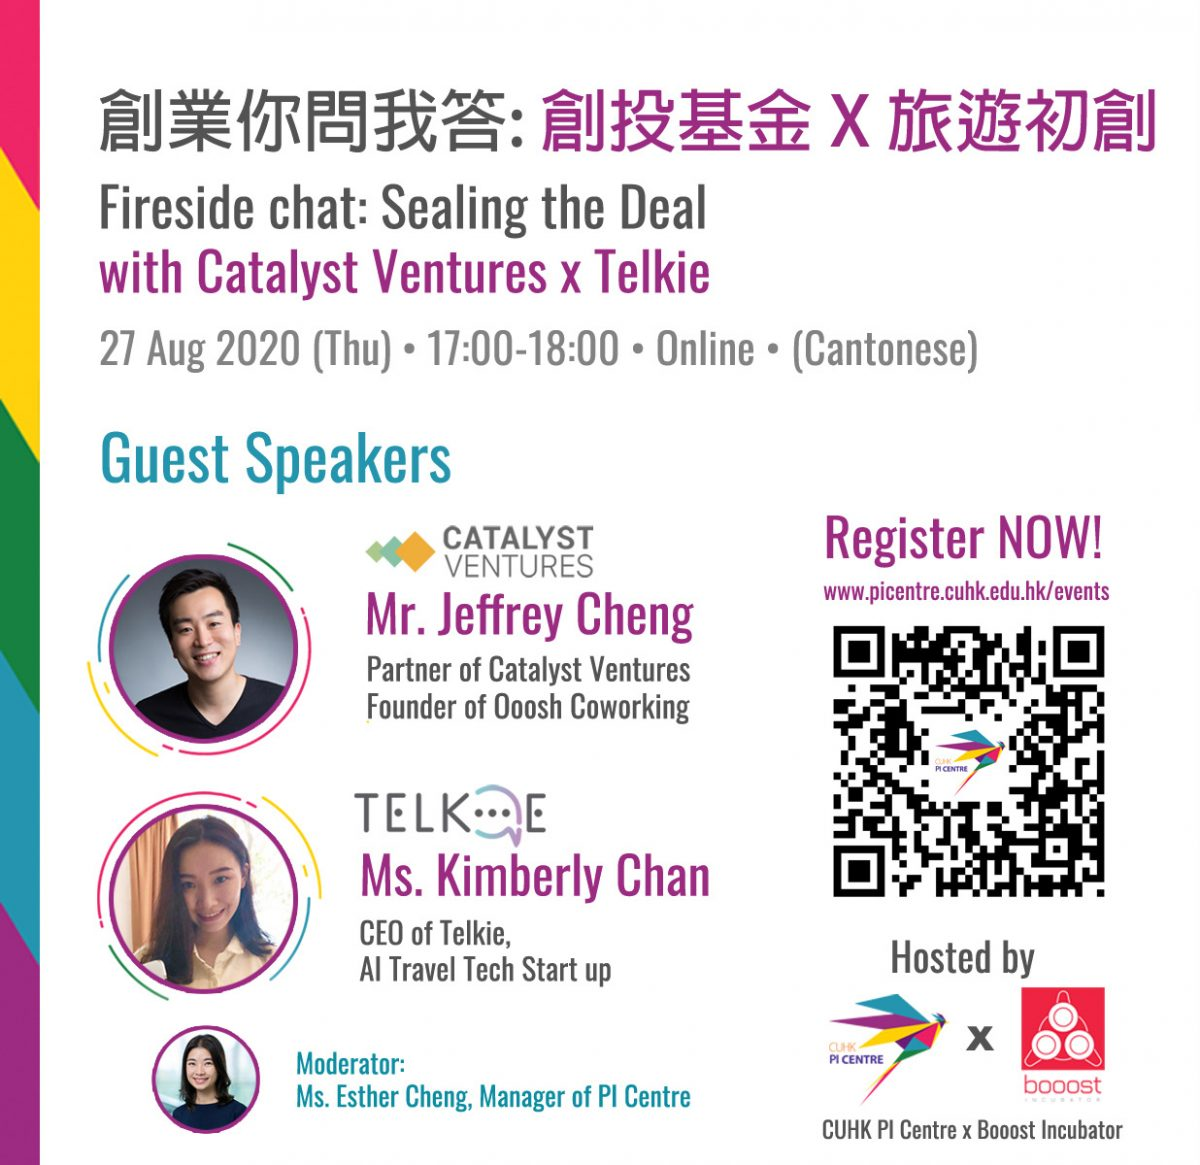 Fireside chat: Sealing the Deal with Catalyst Ventures x Telkie